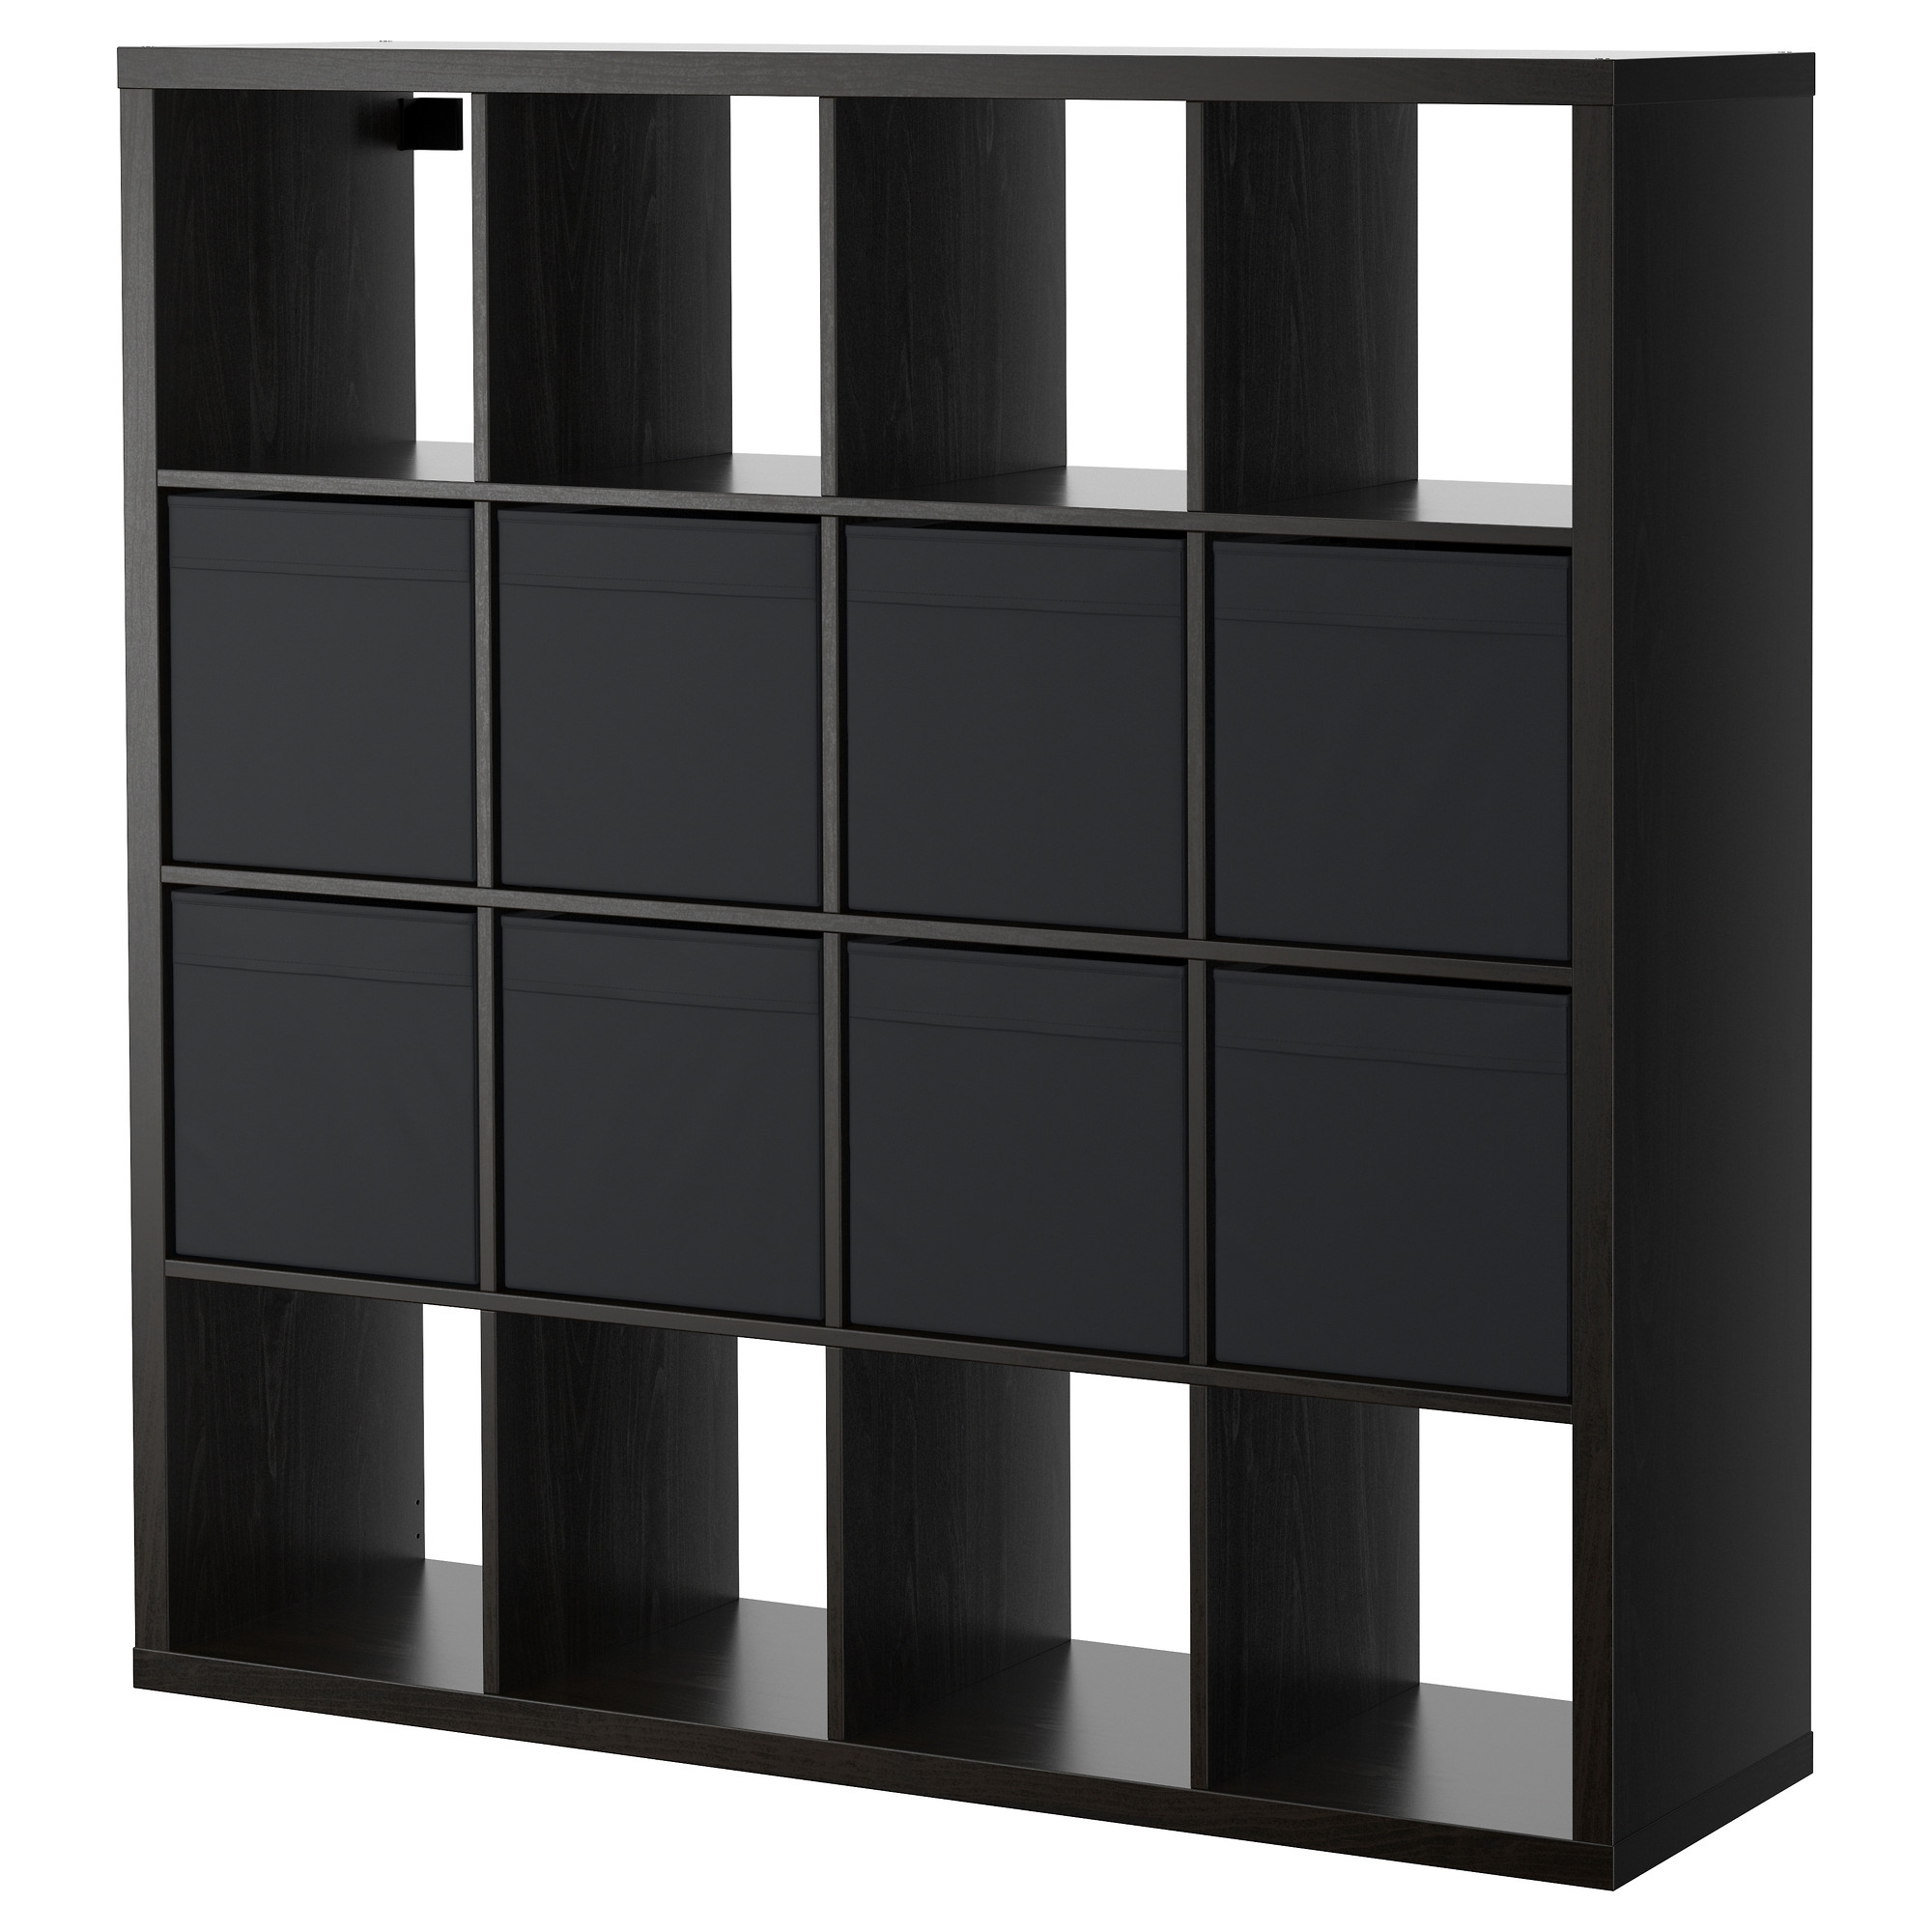 kallax shelving unit with 8 inserts. Black Bedroom Furniture Sets. Home Design Ideas